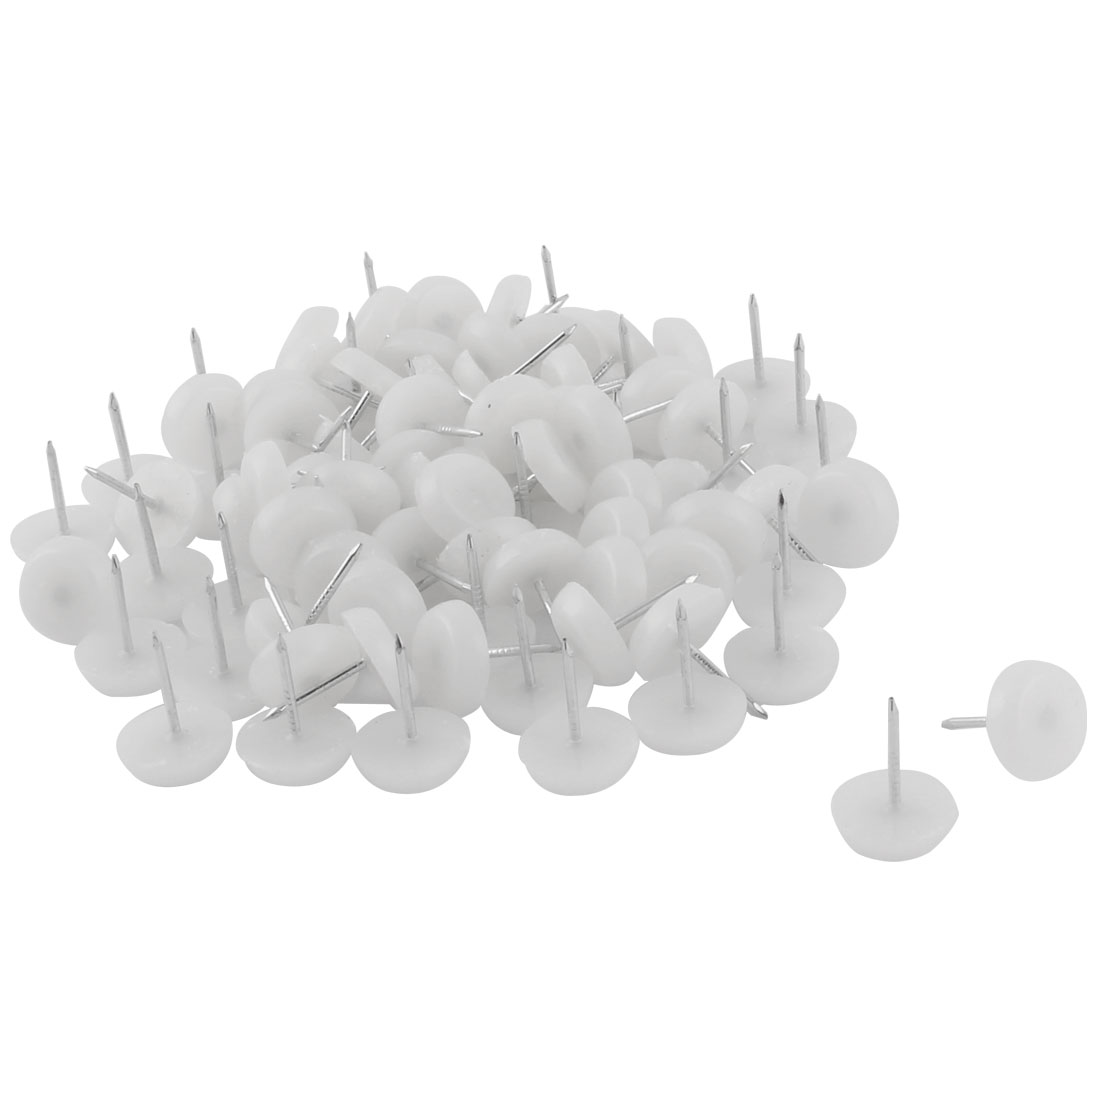 Furniture Chair Plastic Leg Feet Protector Non-slip Nails White 1.3cm Dia 80pcs